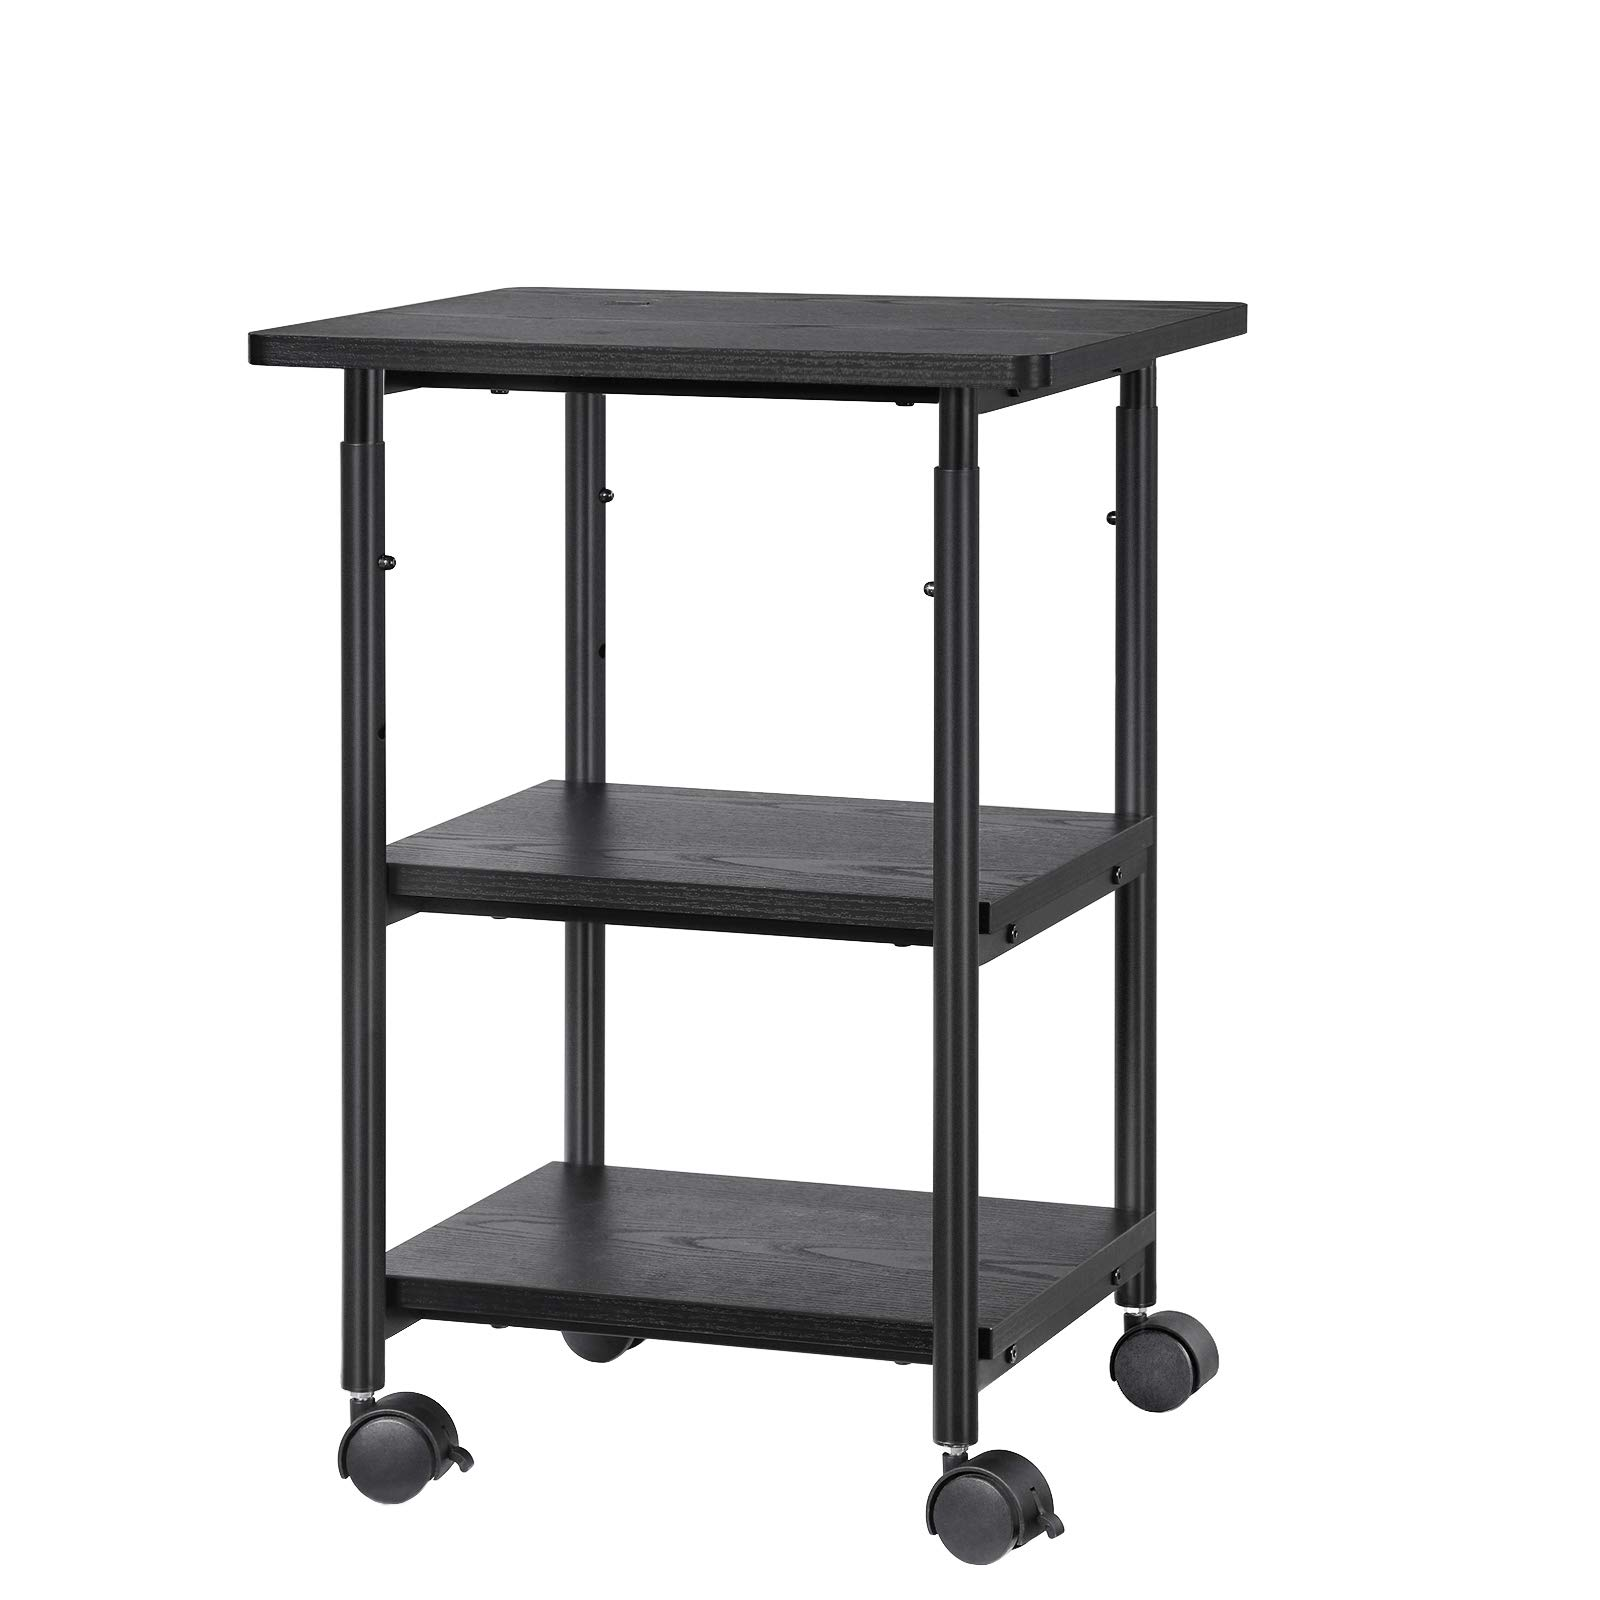 SONGMICS Adjustable Printer Stand Desk Mobile Machine Cart with 2 Shelves Heavy Duty Storage Trolley for Office Home Black UOPS03B by SONGMICS